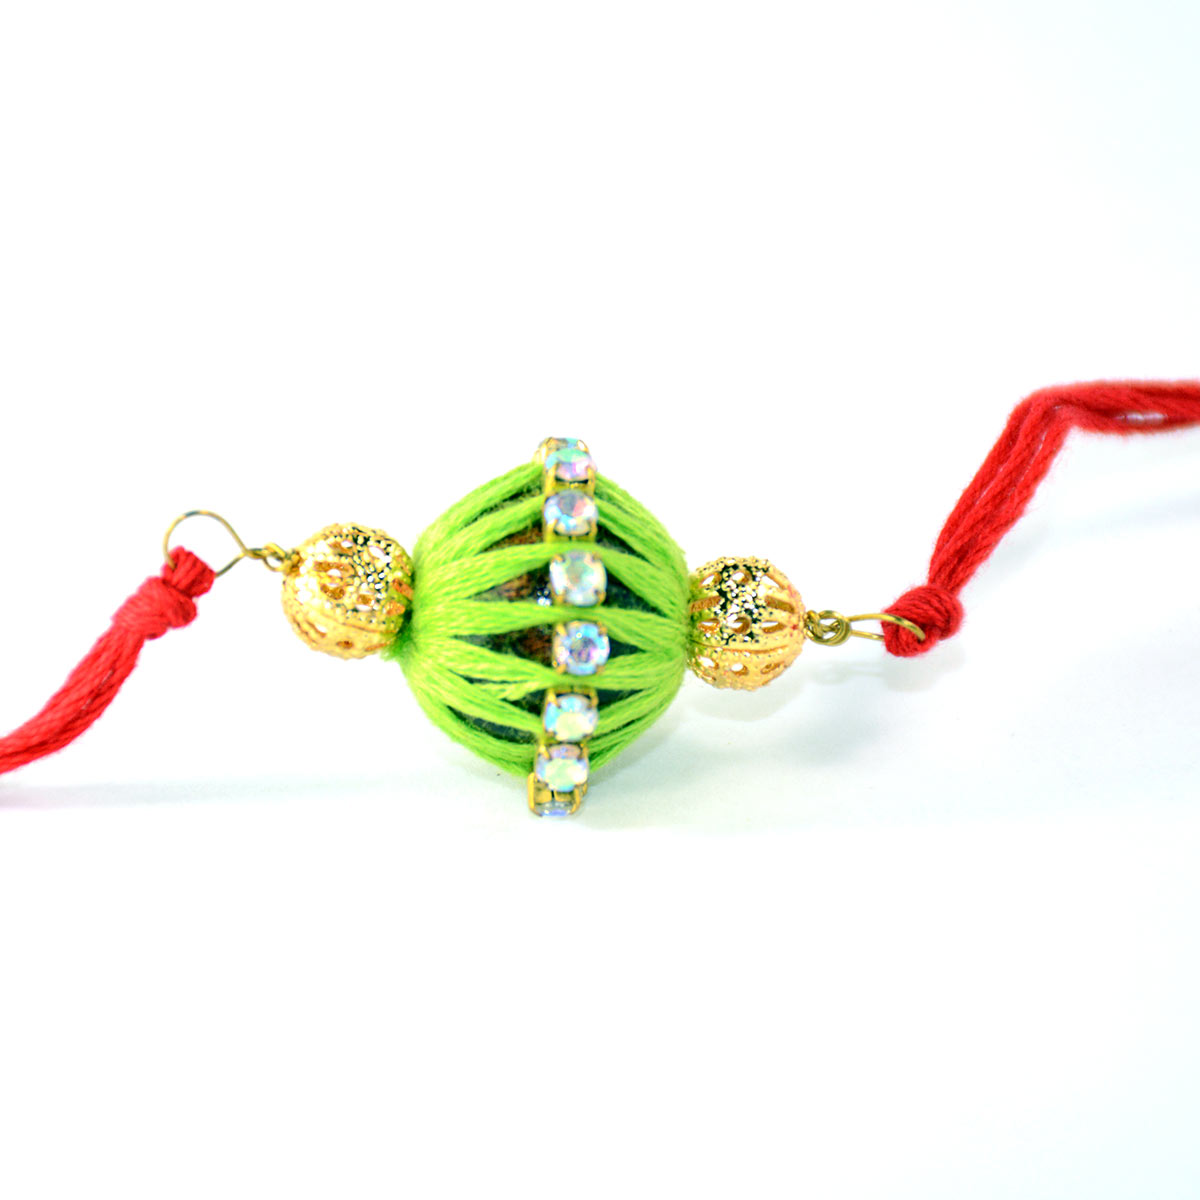 Airplane Home Decor Handmade Rakhi Dolki Beads In Green And Red Color